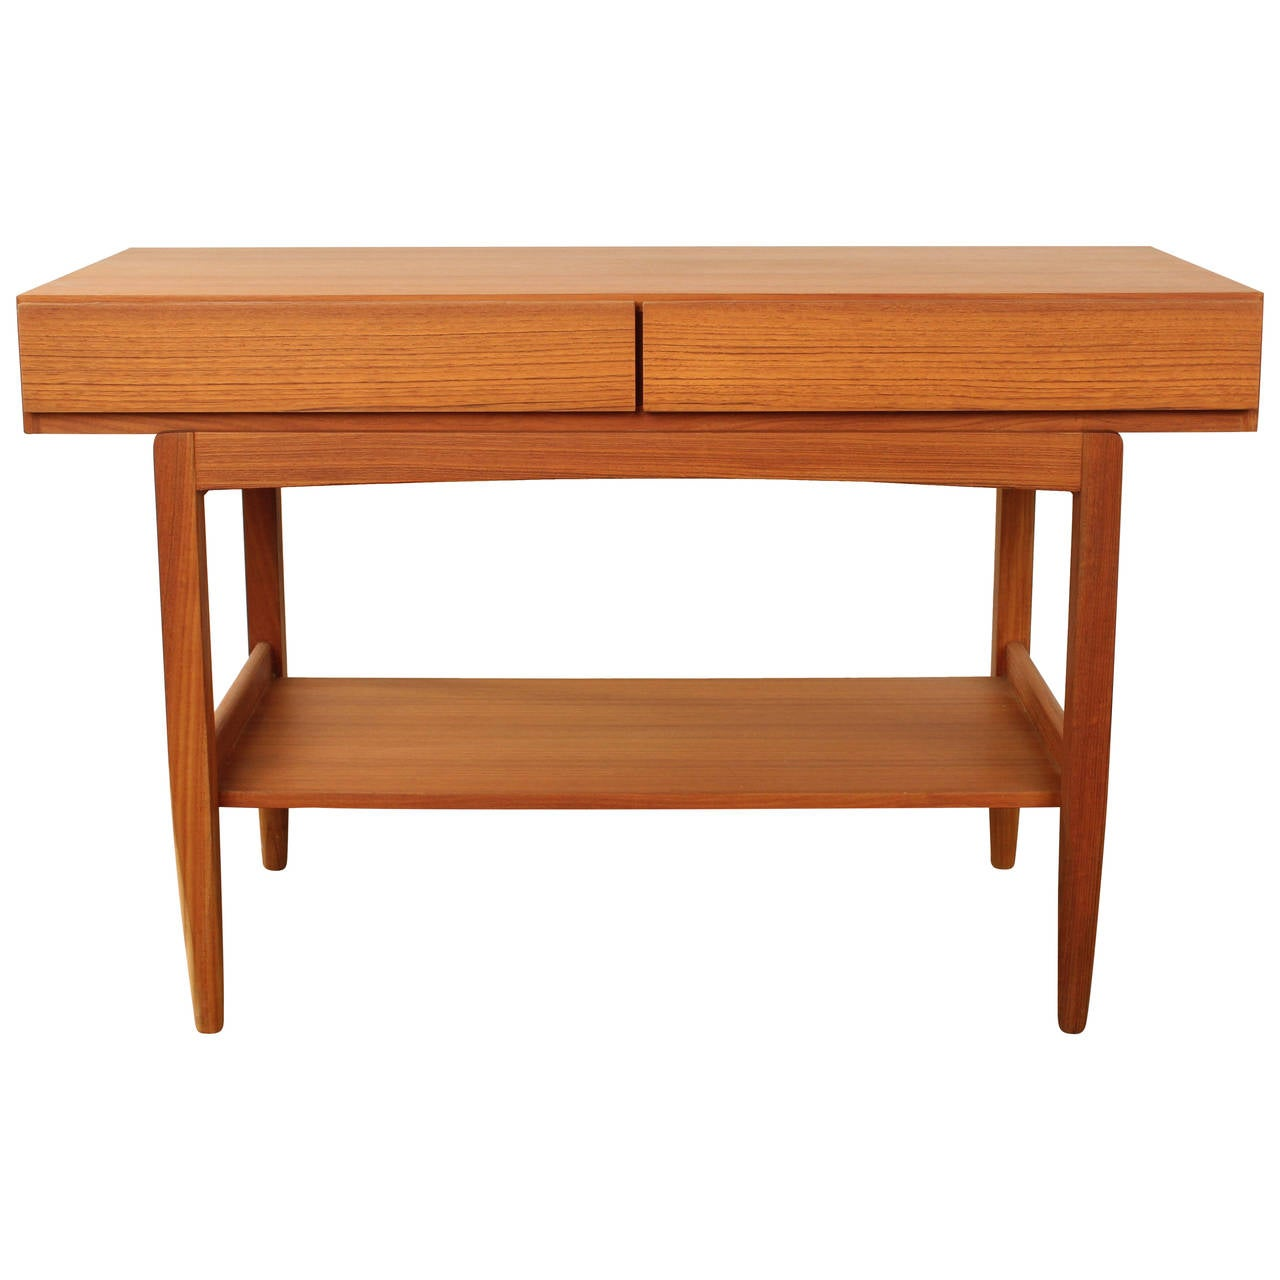 Danish mid century console table by ib kofod larsen at 1stdibs for Table console